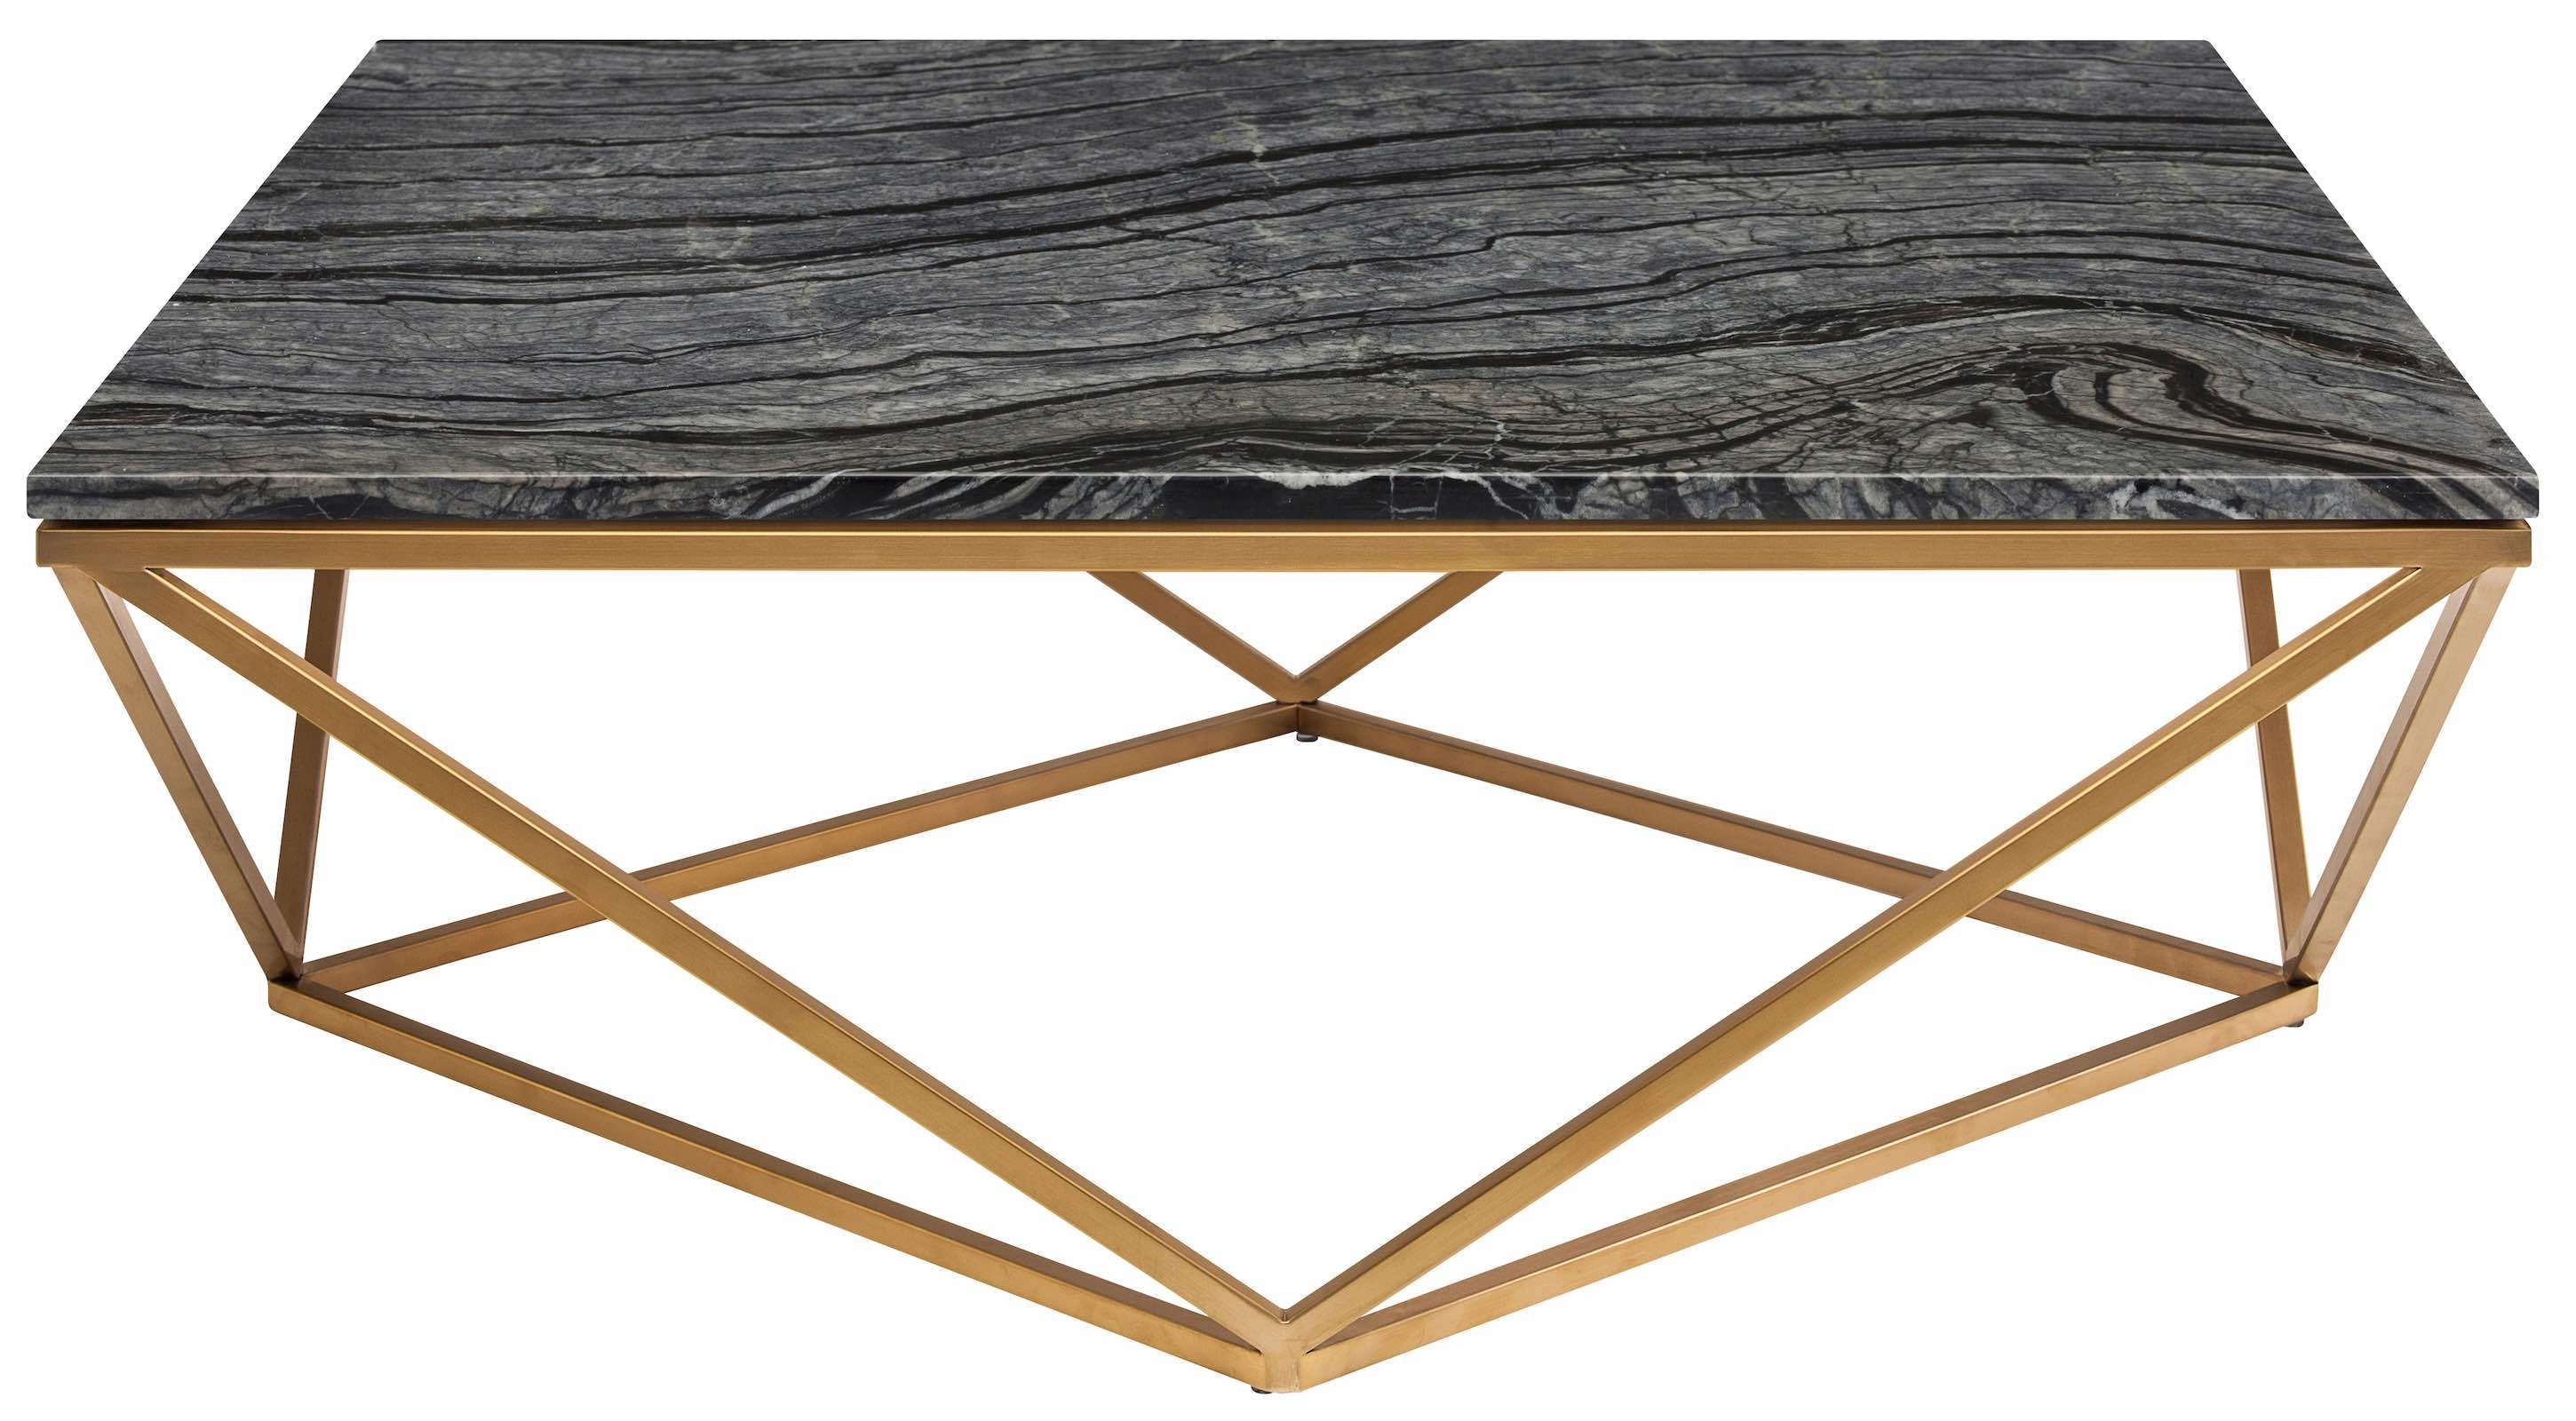 Wood Marble Coffee Table - Coffee Table Ideas intended for Intertwine Triangle Marble Coffee Tables (Image 30 of 30)